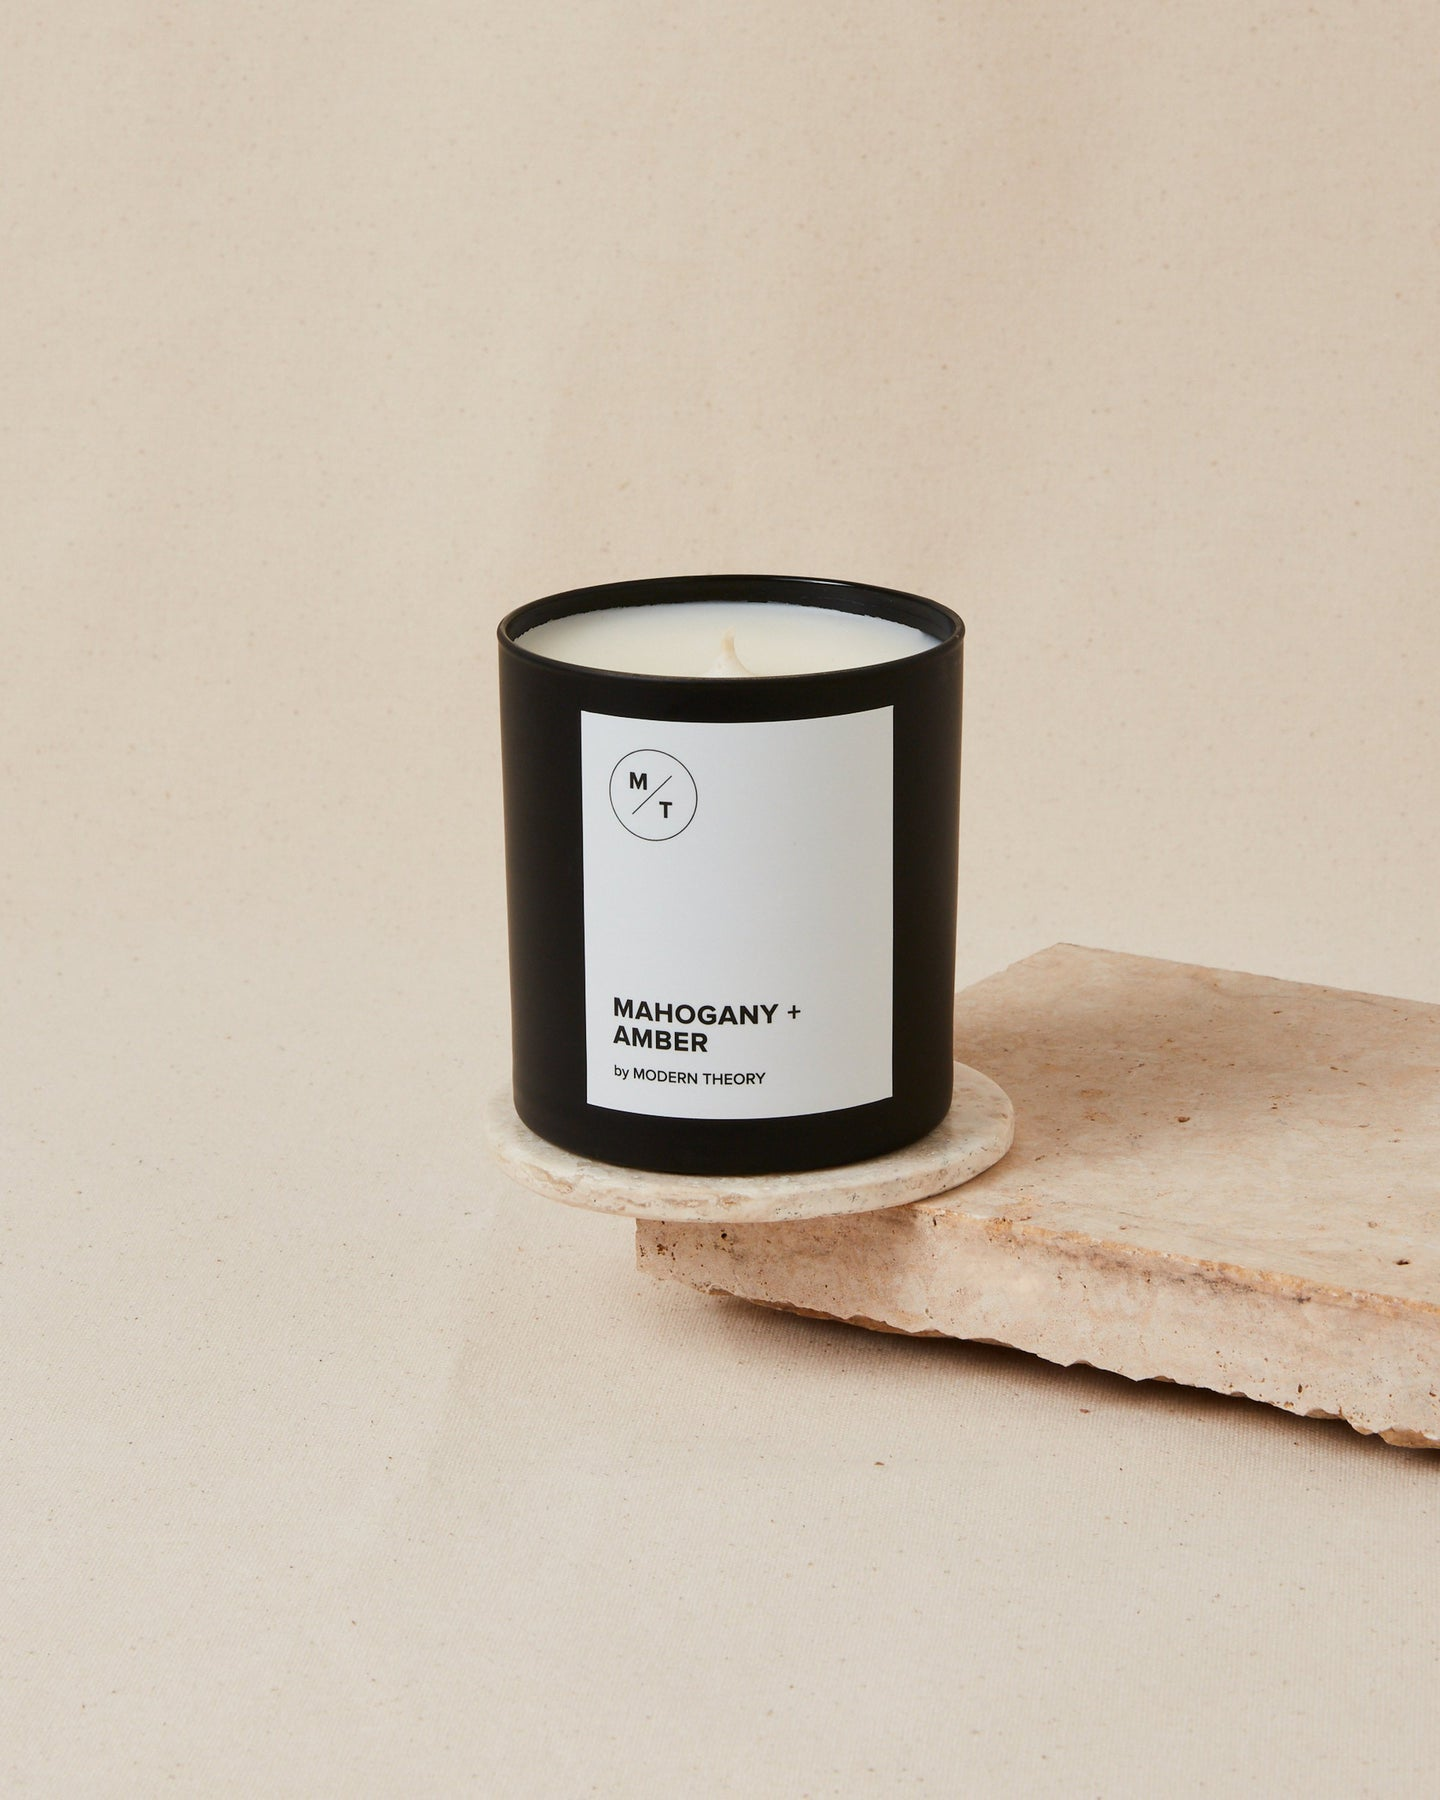 MAHOGANY + AMBER Modern Theory Hand-poured Coconut Wax Candle